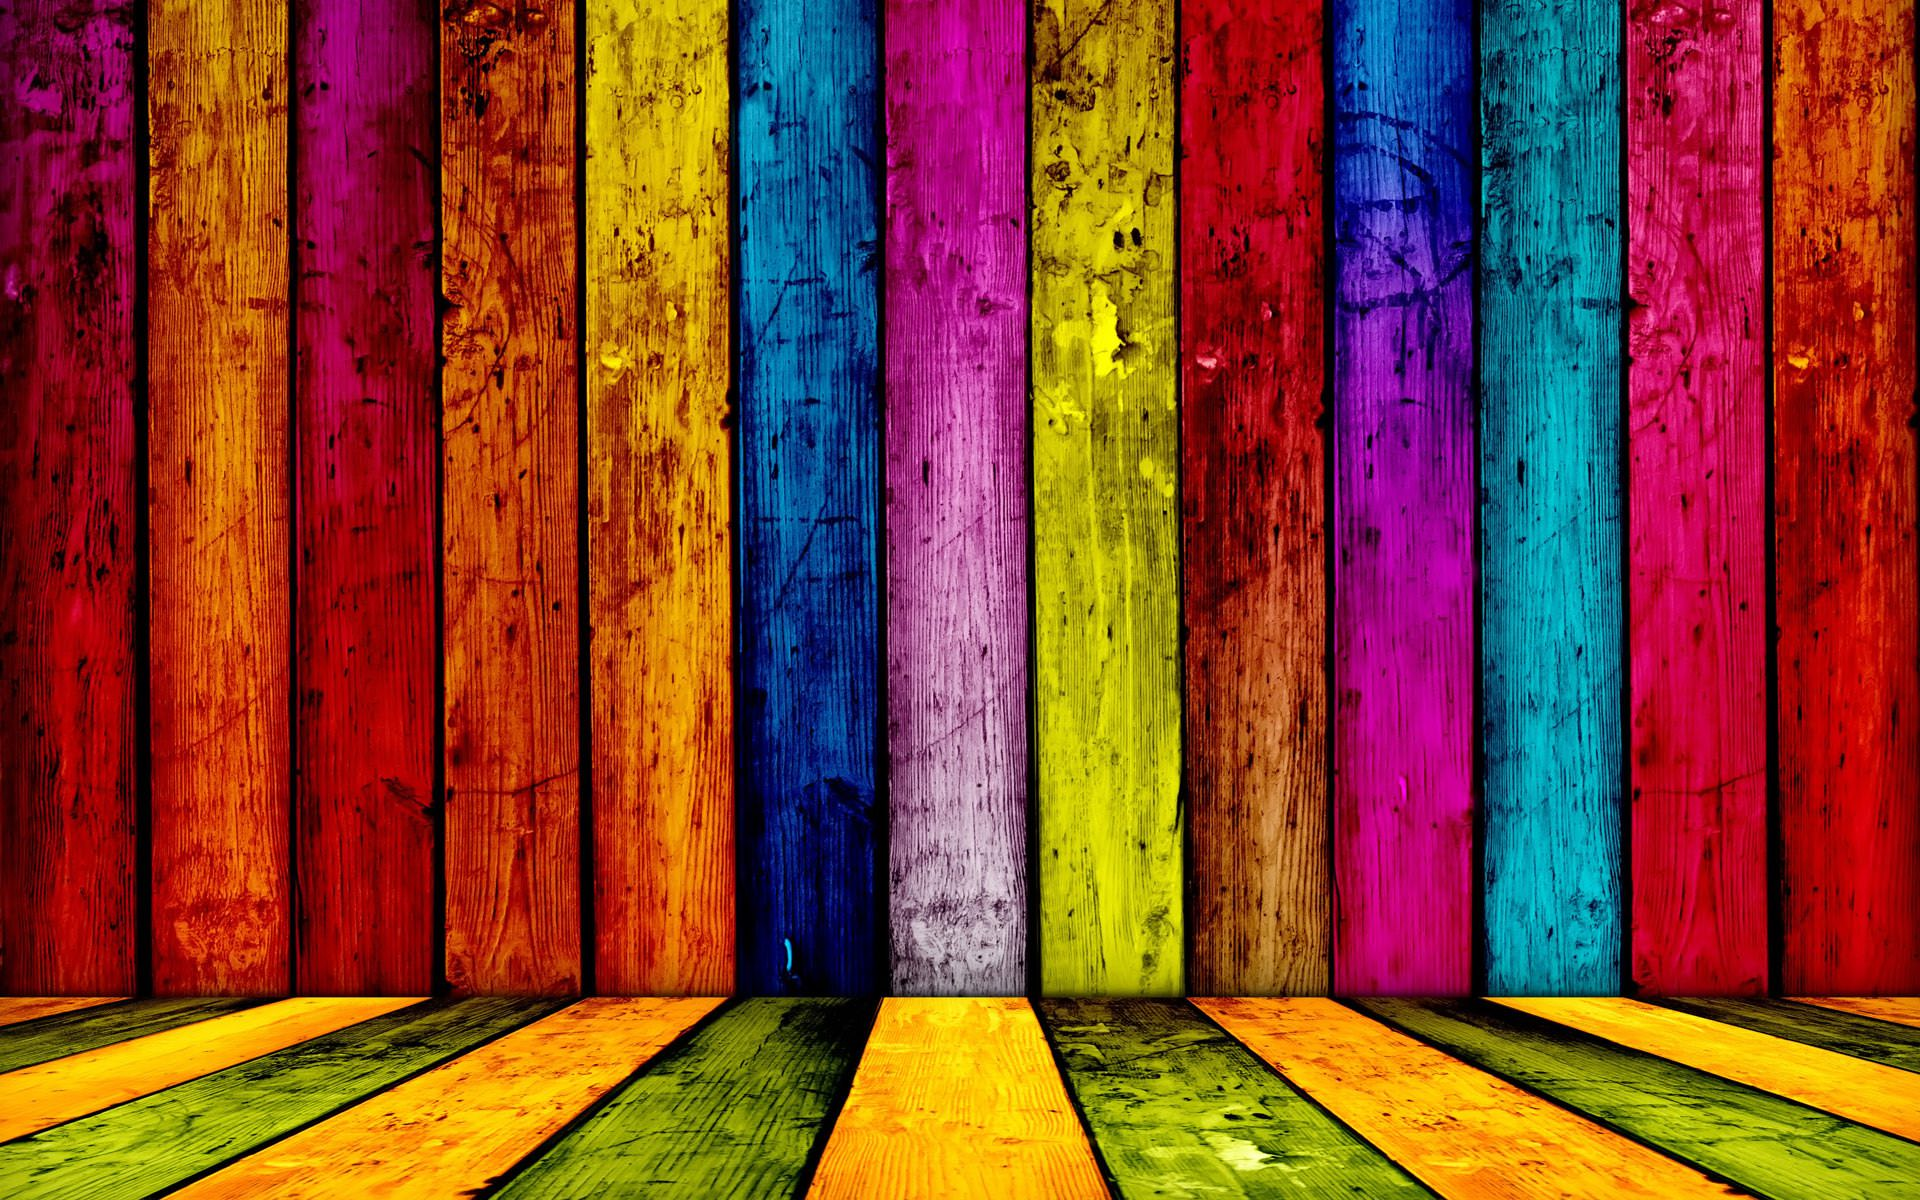 Colorful Wooden Planks Wallpaper